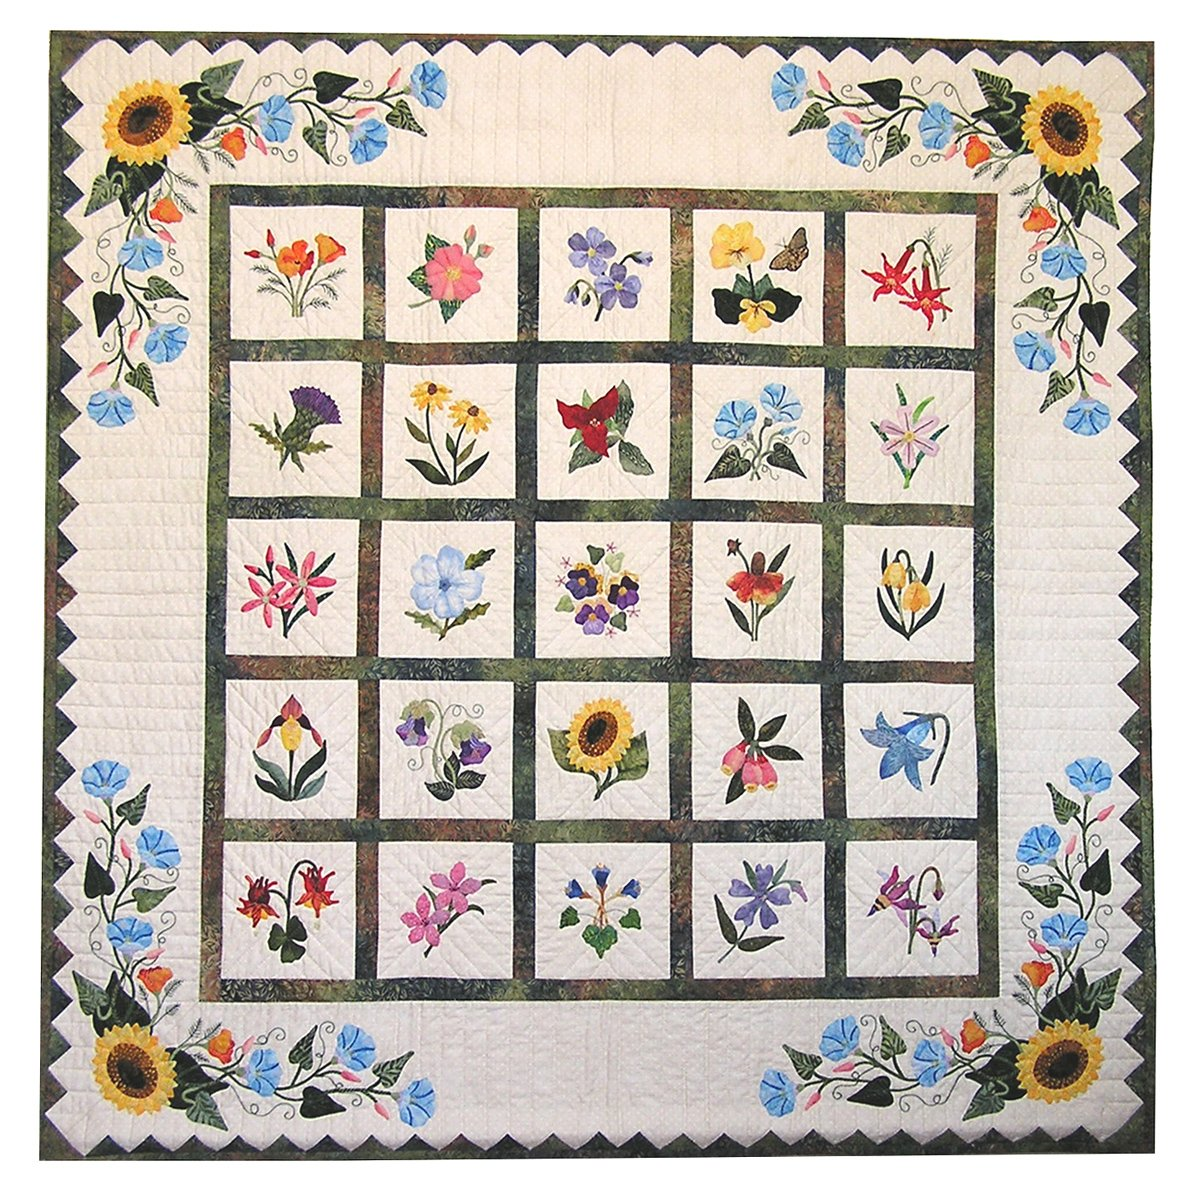 P3-140 Wildflower Wall-Hanging